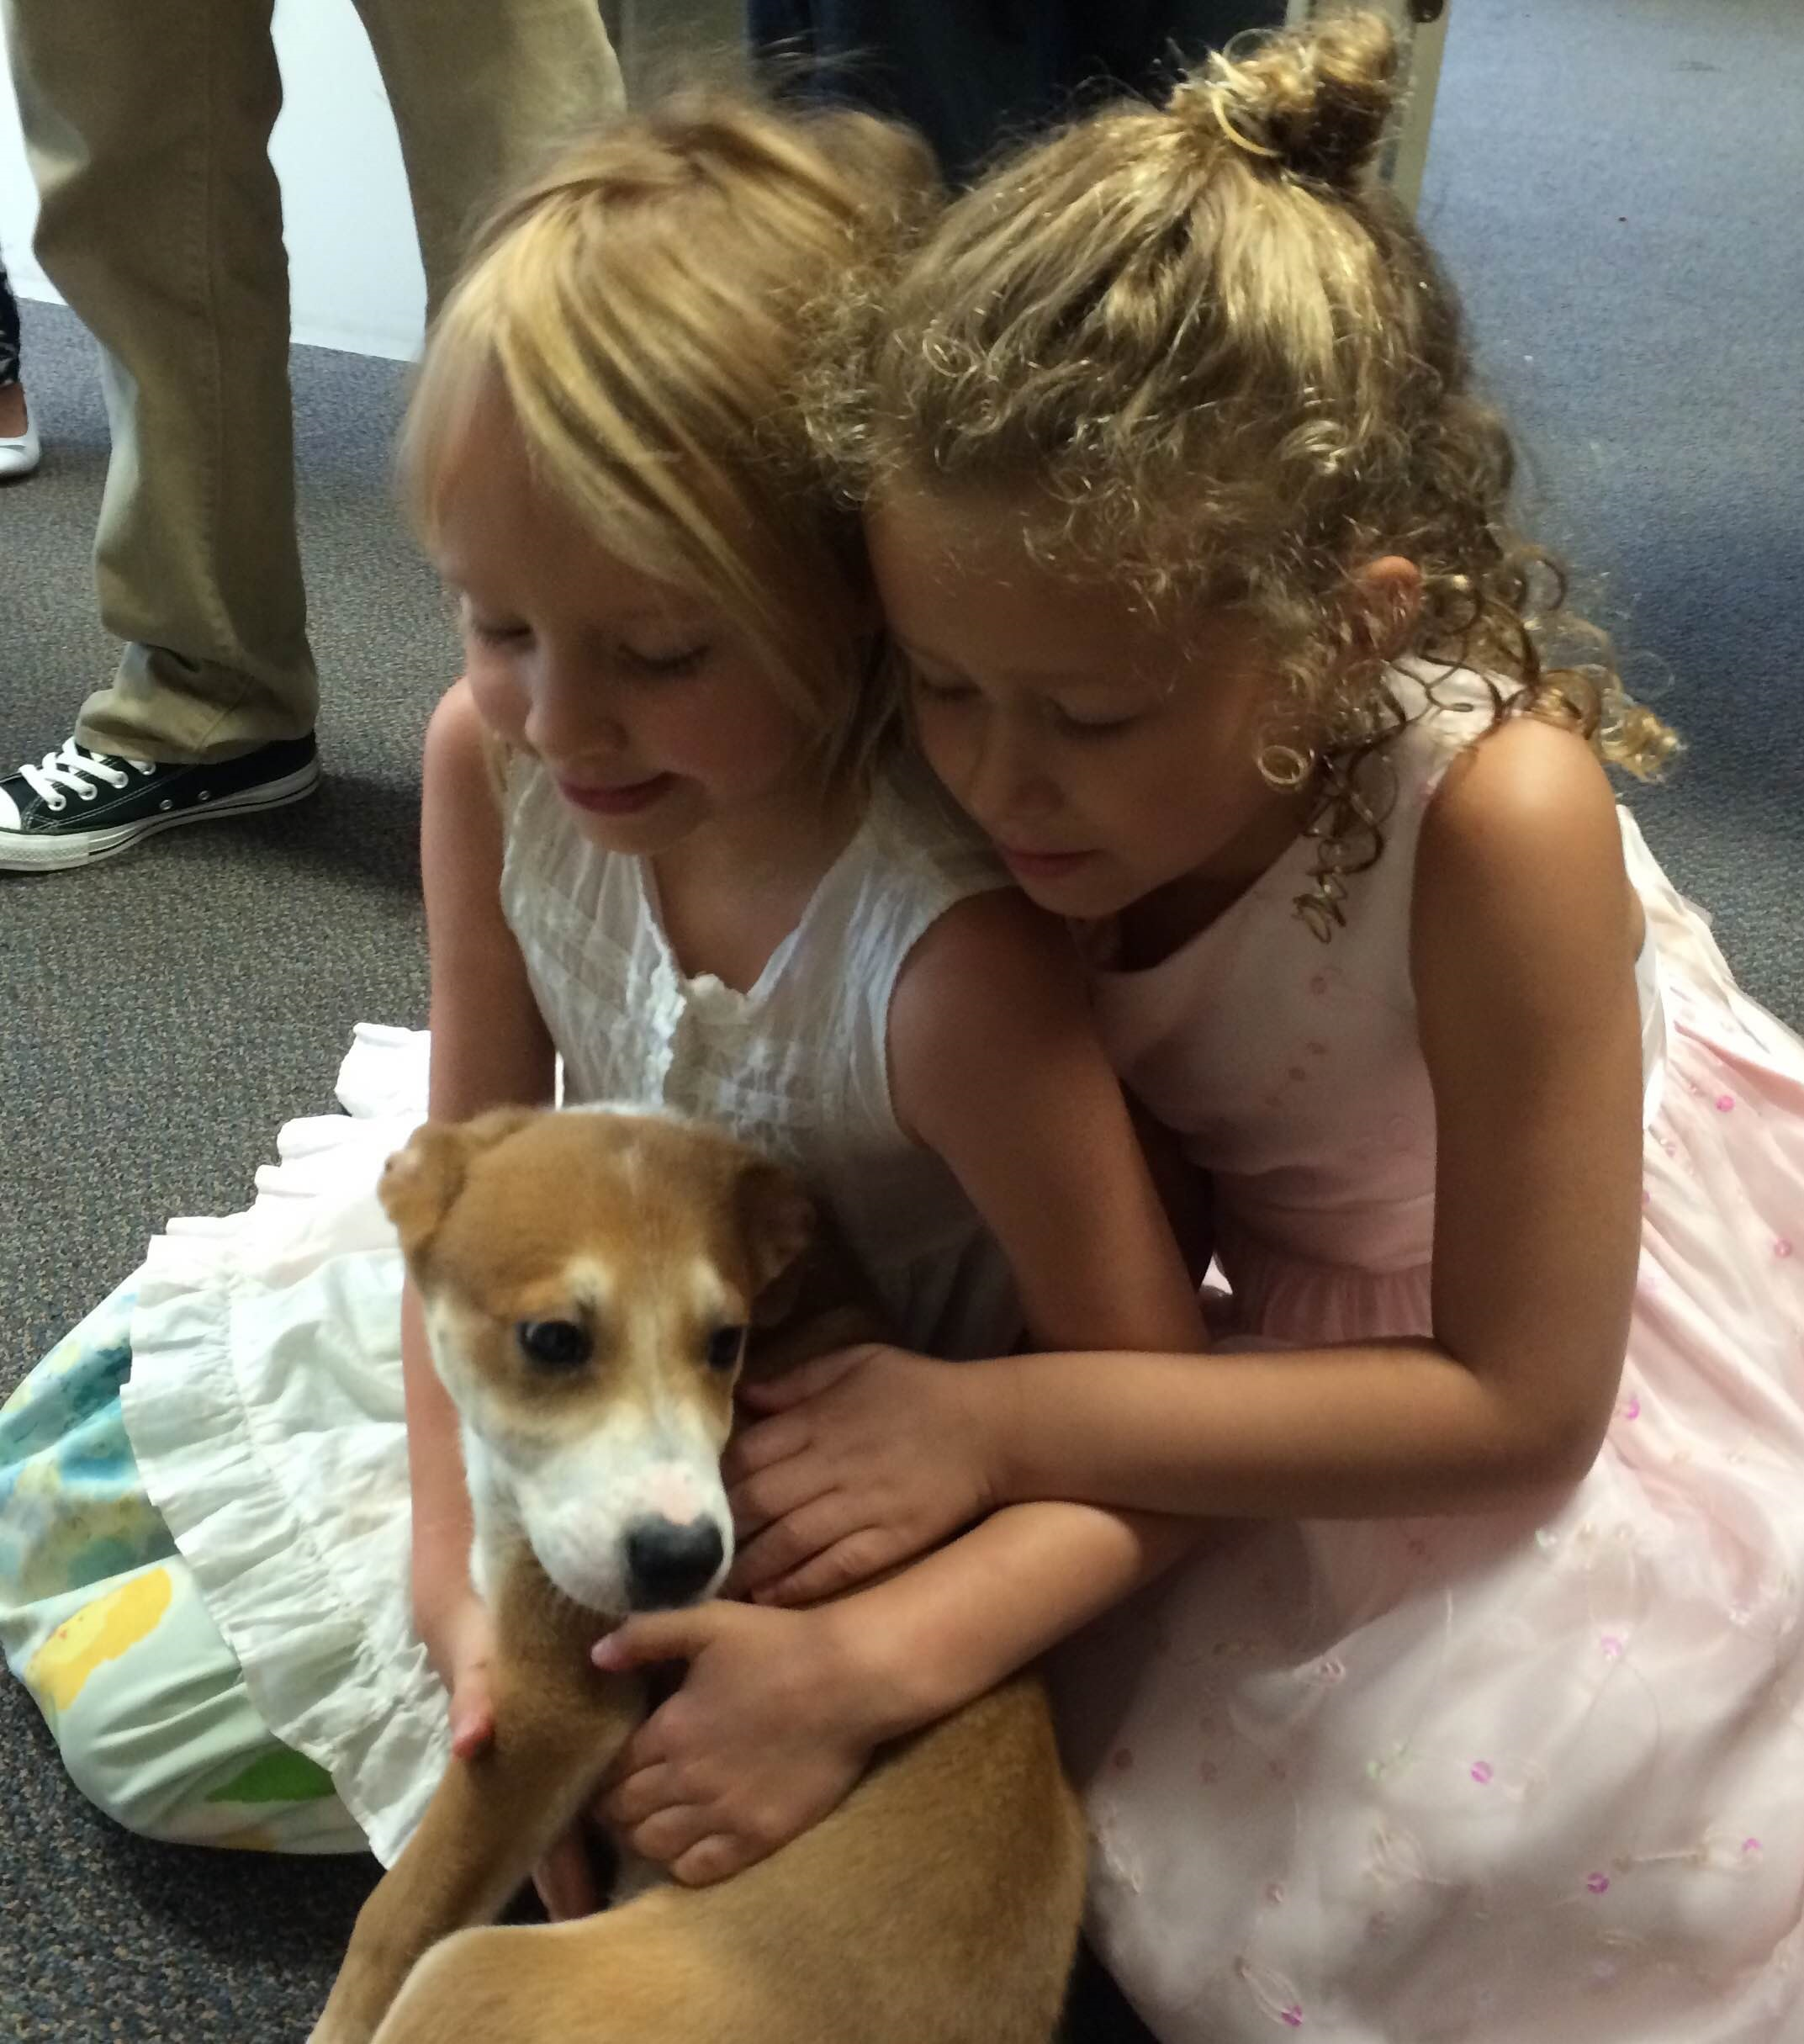 Two girls petting puppy in church entryway